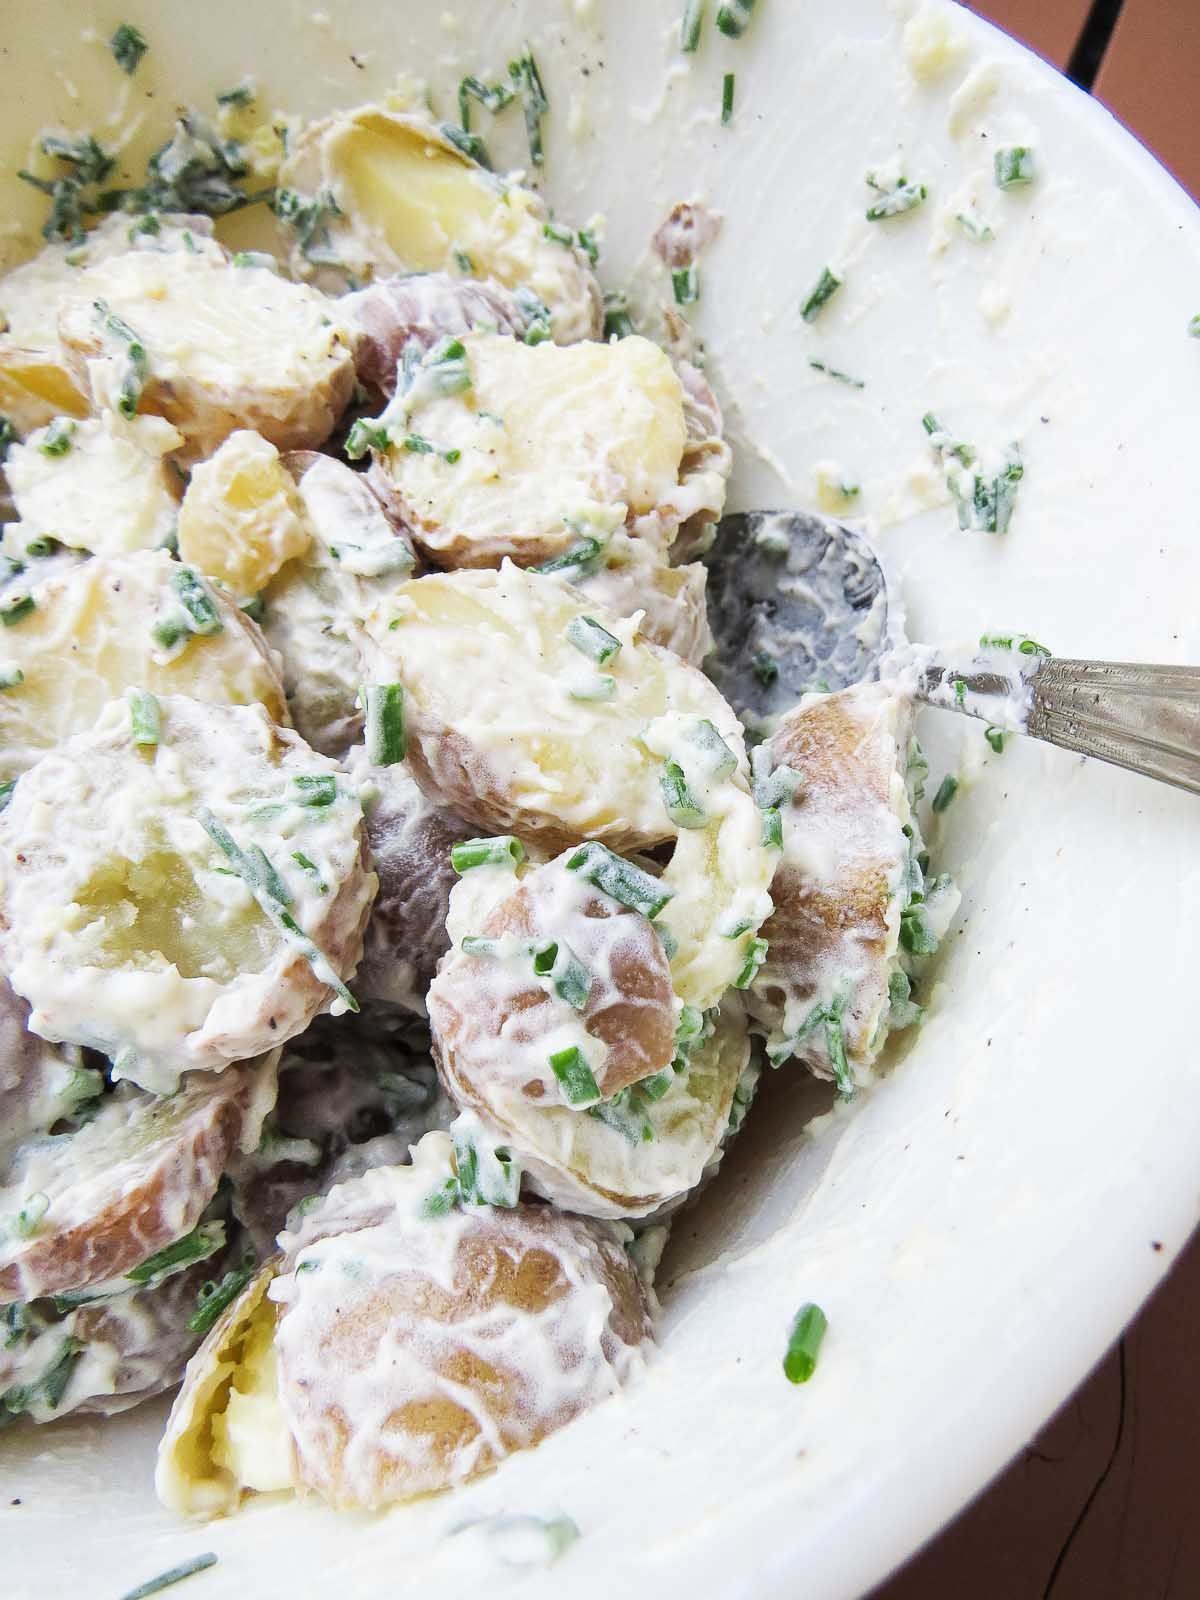 Rustic Potato Salad - Don't bother with removing the potato skins in this Rustic Potato Salad recipe! Keeping them on and adding home grown chives from the garden gives this recipe a rustic feel! Plus it is a perfect recipe for a picnic or packed in the cooler for camping!